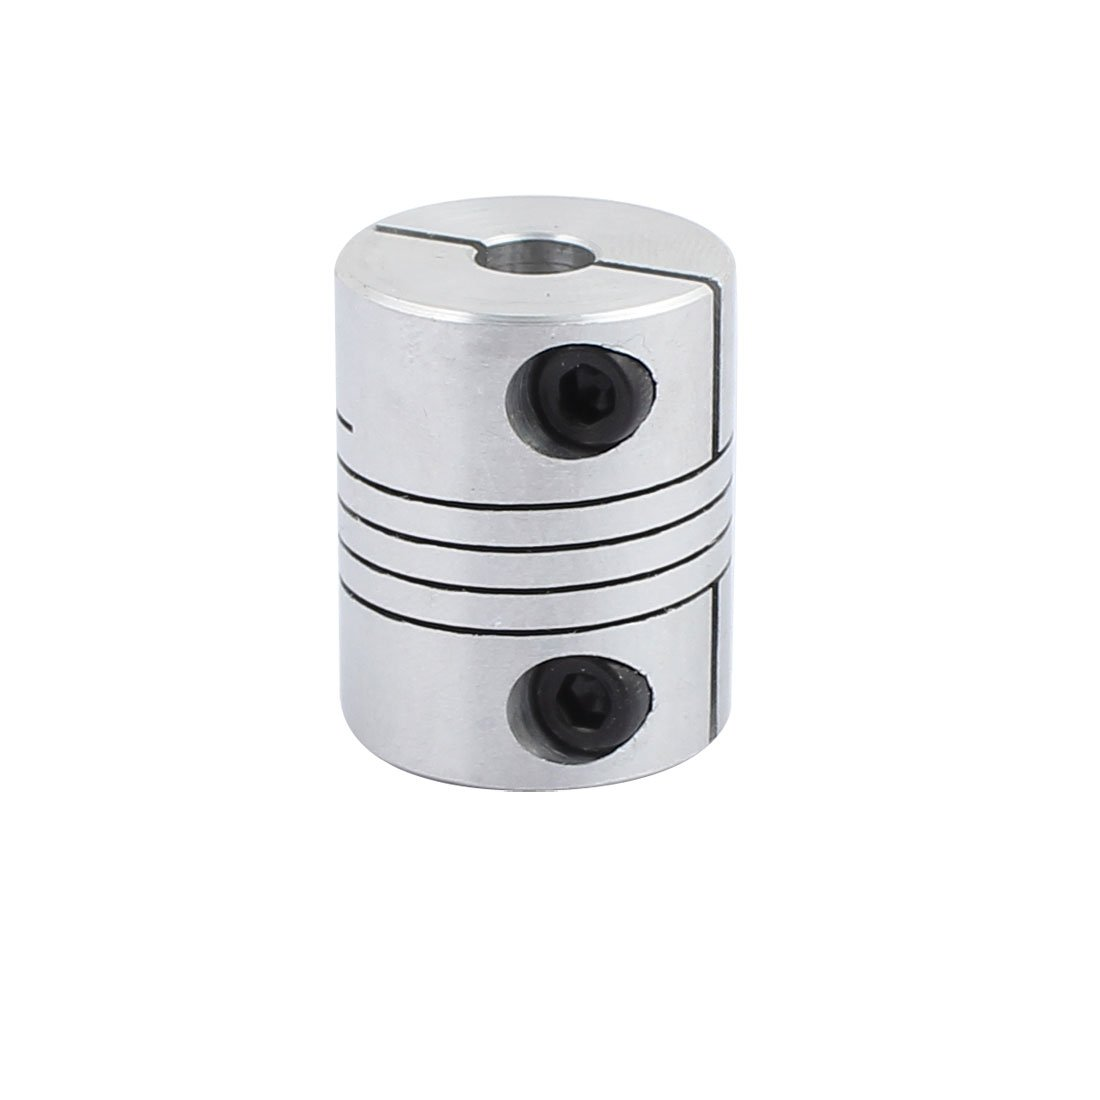 uxcell 5mm to 10mm Shaft Coupling 30mm Length 25mm Diameter Stepper Motor Coupler Aluminum Alloy Joint Connector for 3D Printer CNC Machine DIY Encoder